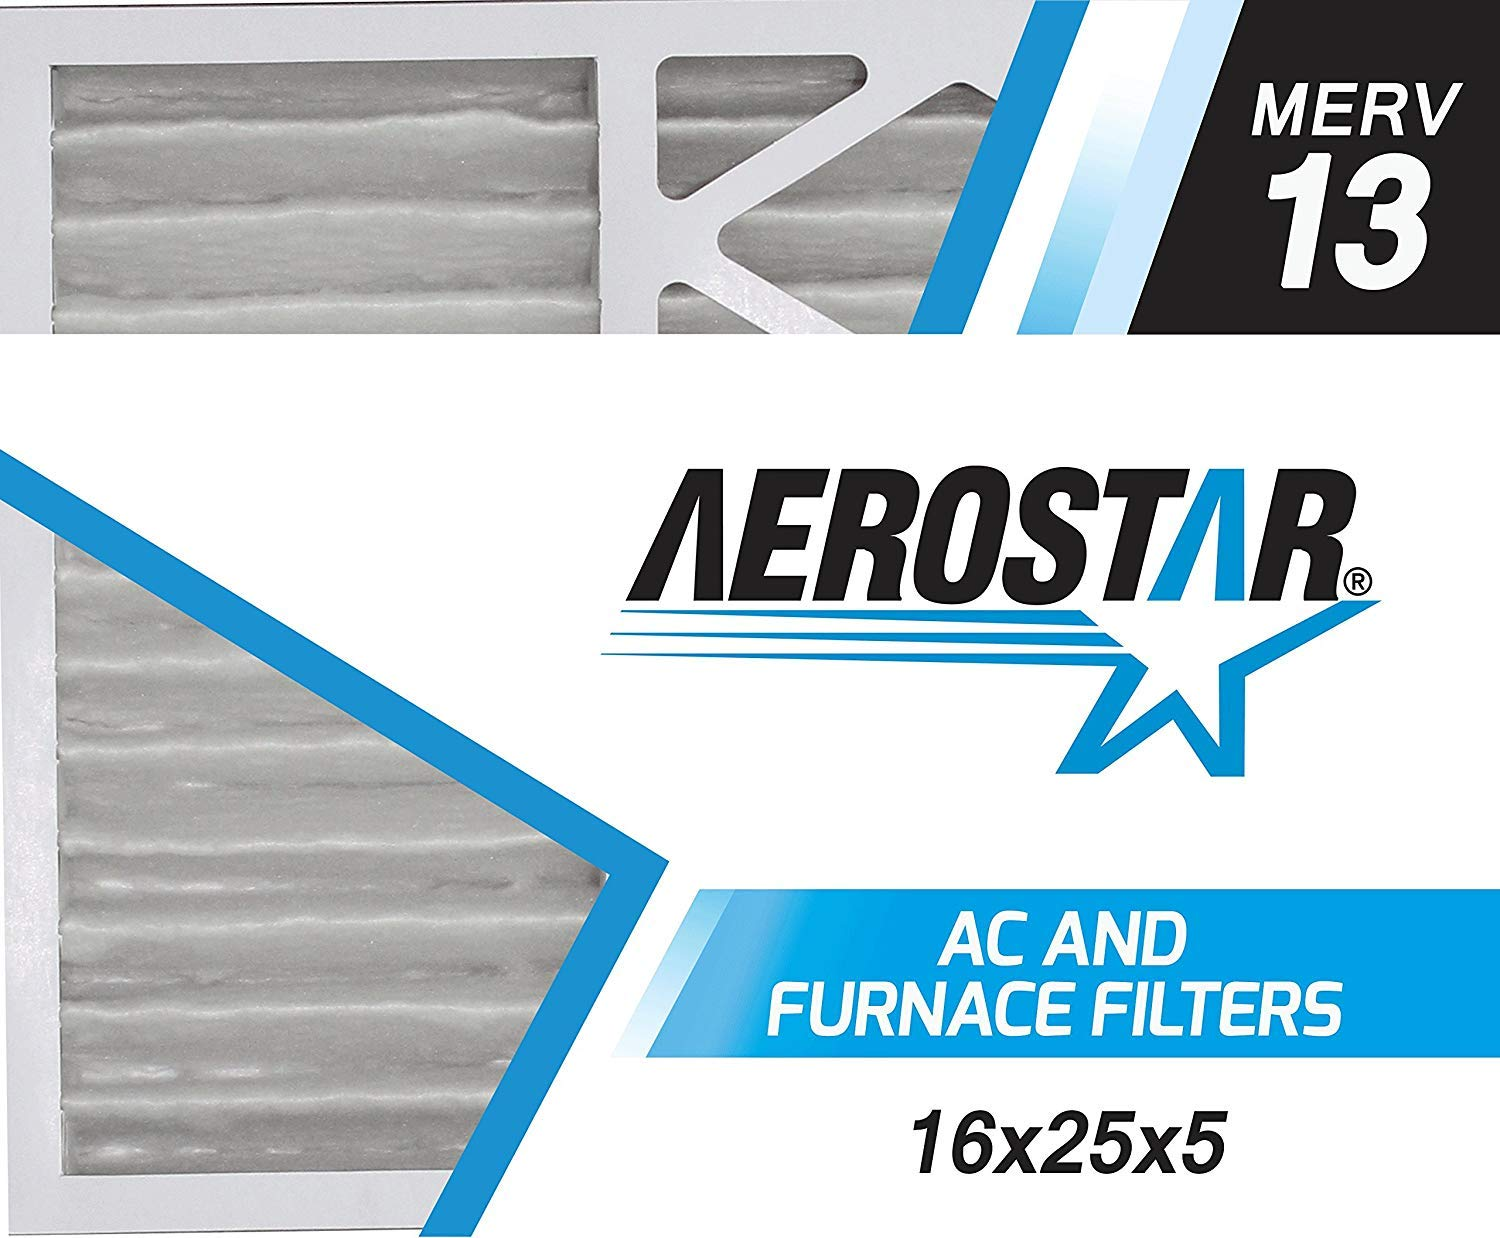 """Aerostar 16x25x5 MERV 13 Honeywell Replacement Pleated Air Filter, Made in the USA 15 7/8"""" x 24 3/4"""" x 4 3/8"""", 2-Pack"""